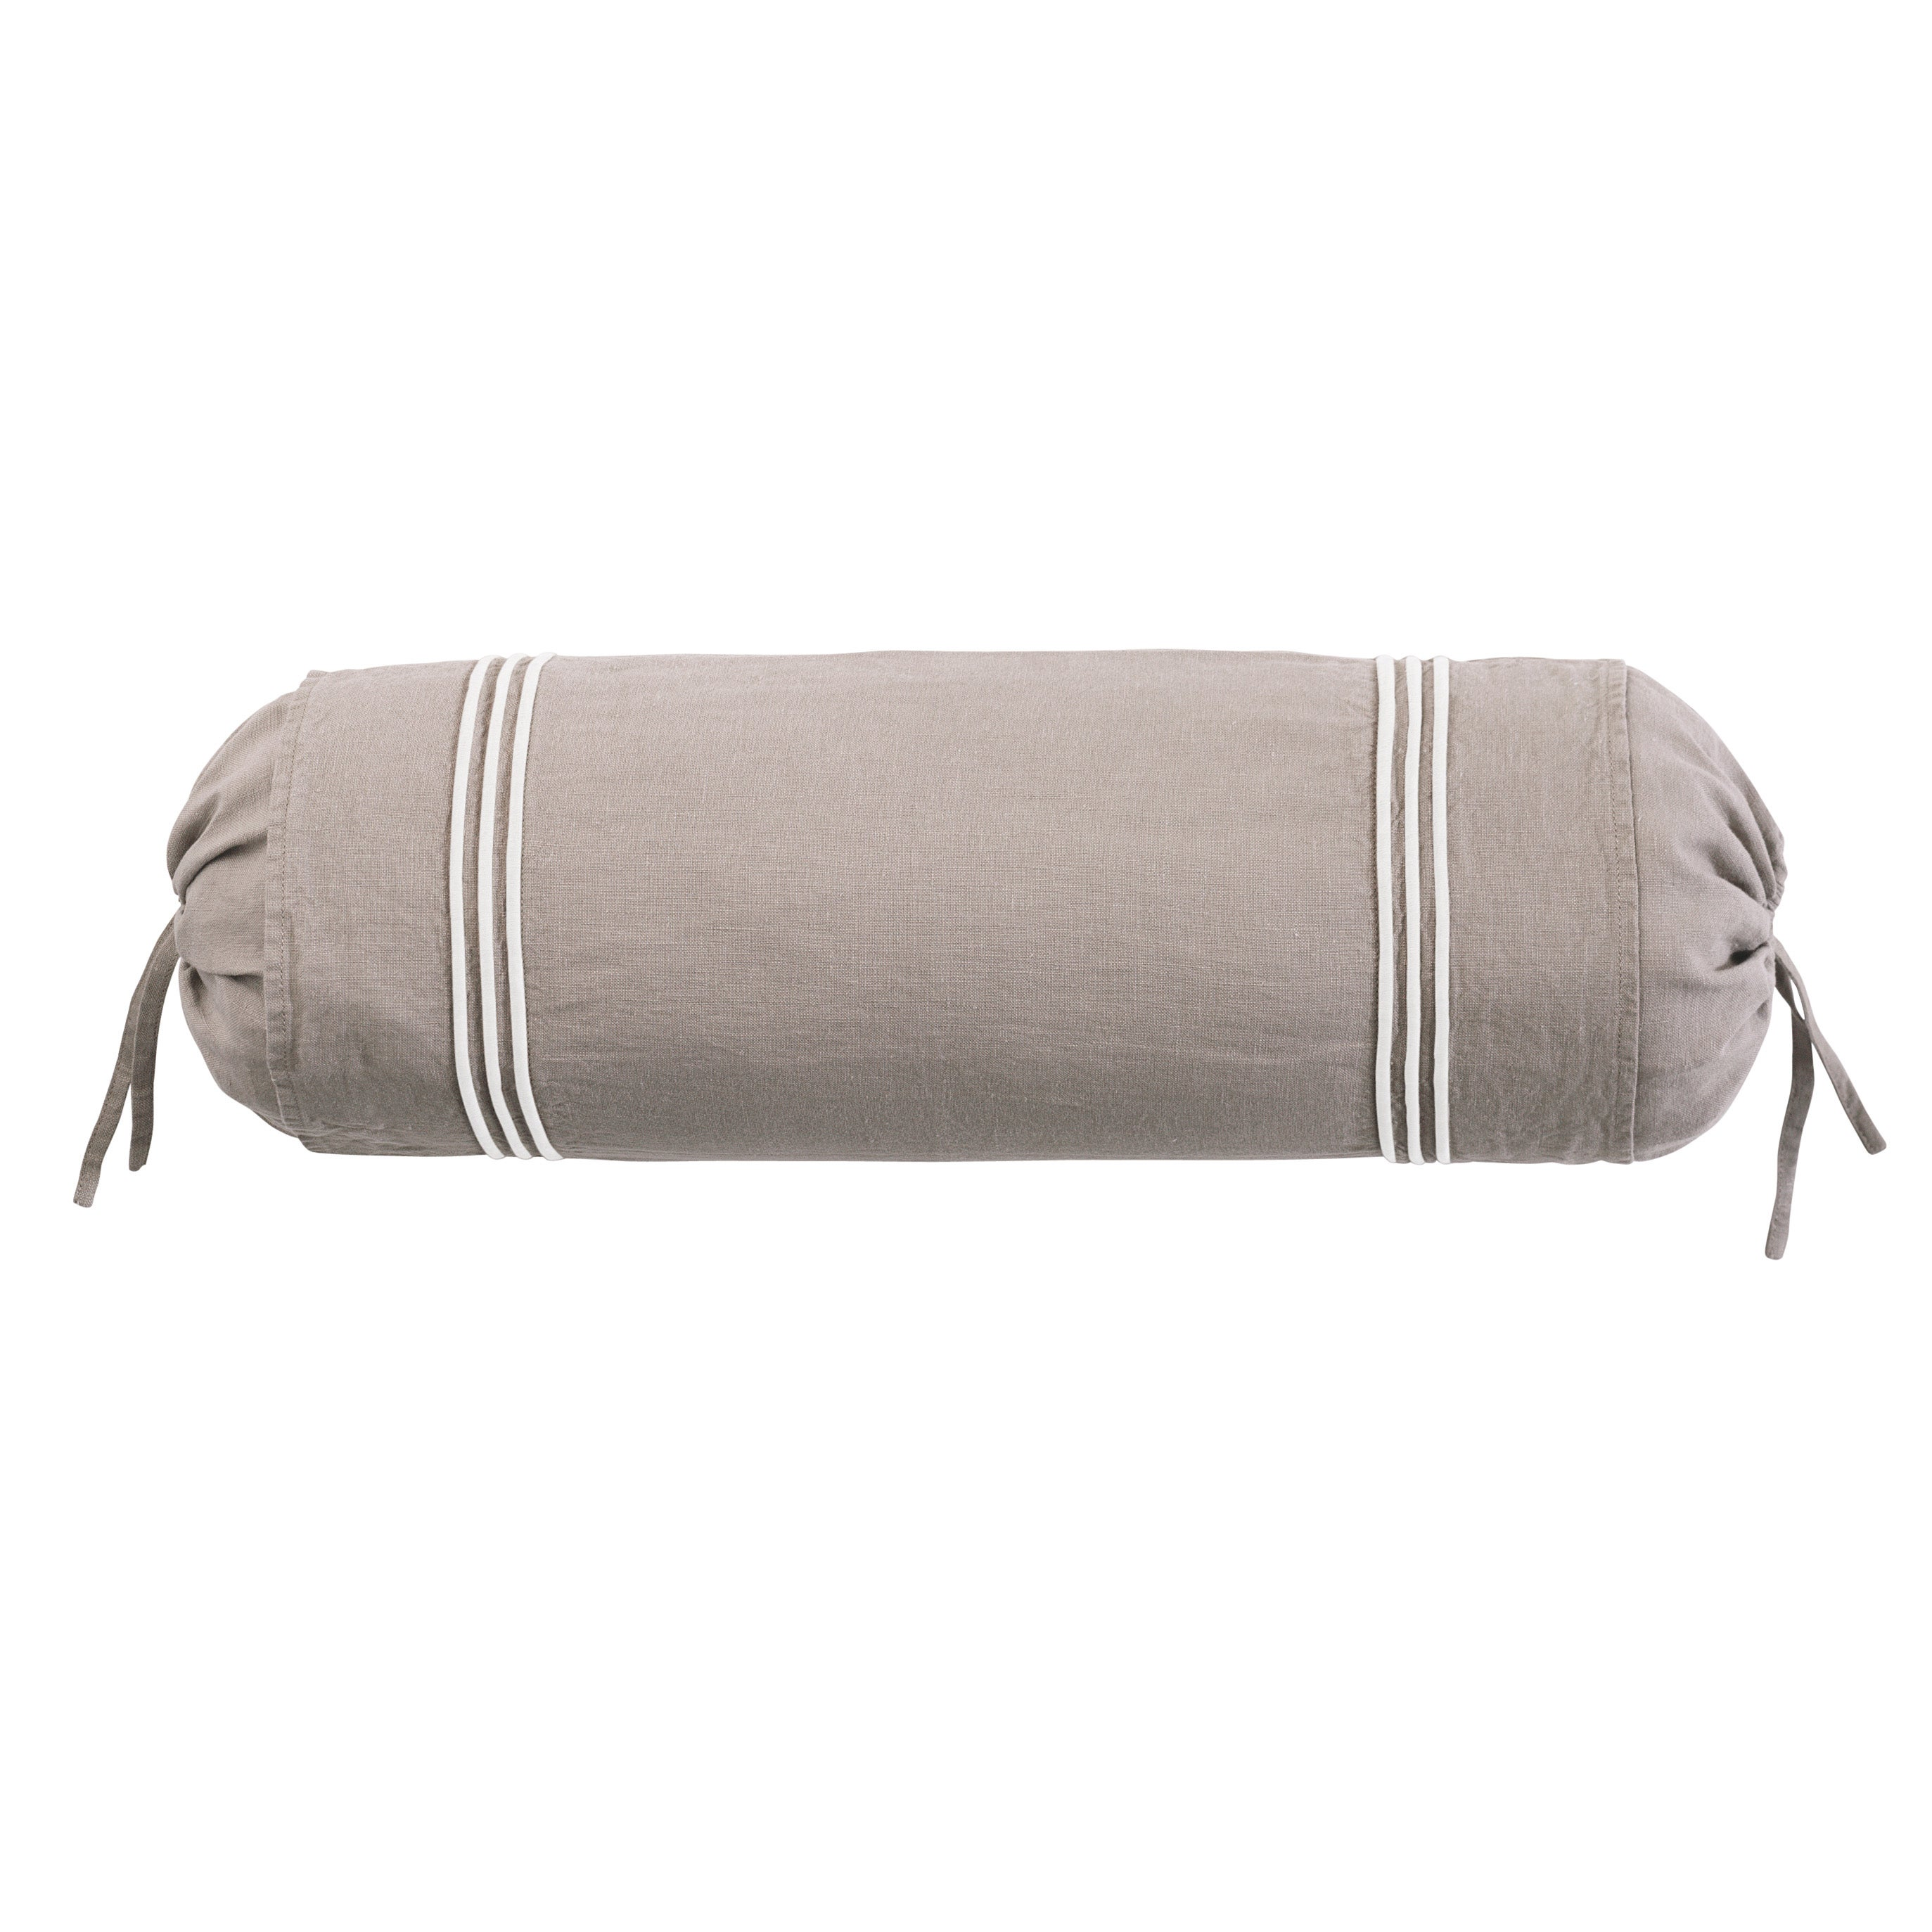 Roxbury Park Barrato Linen Prarie Ivory Neck Roll Decorative Pillow at Sears.com